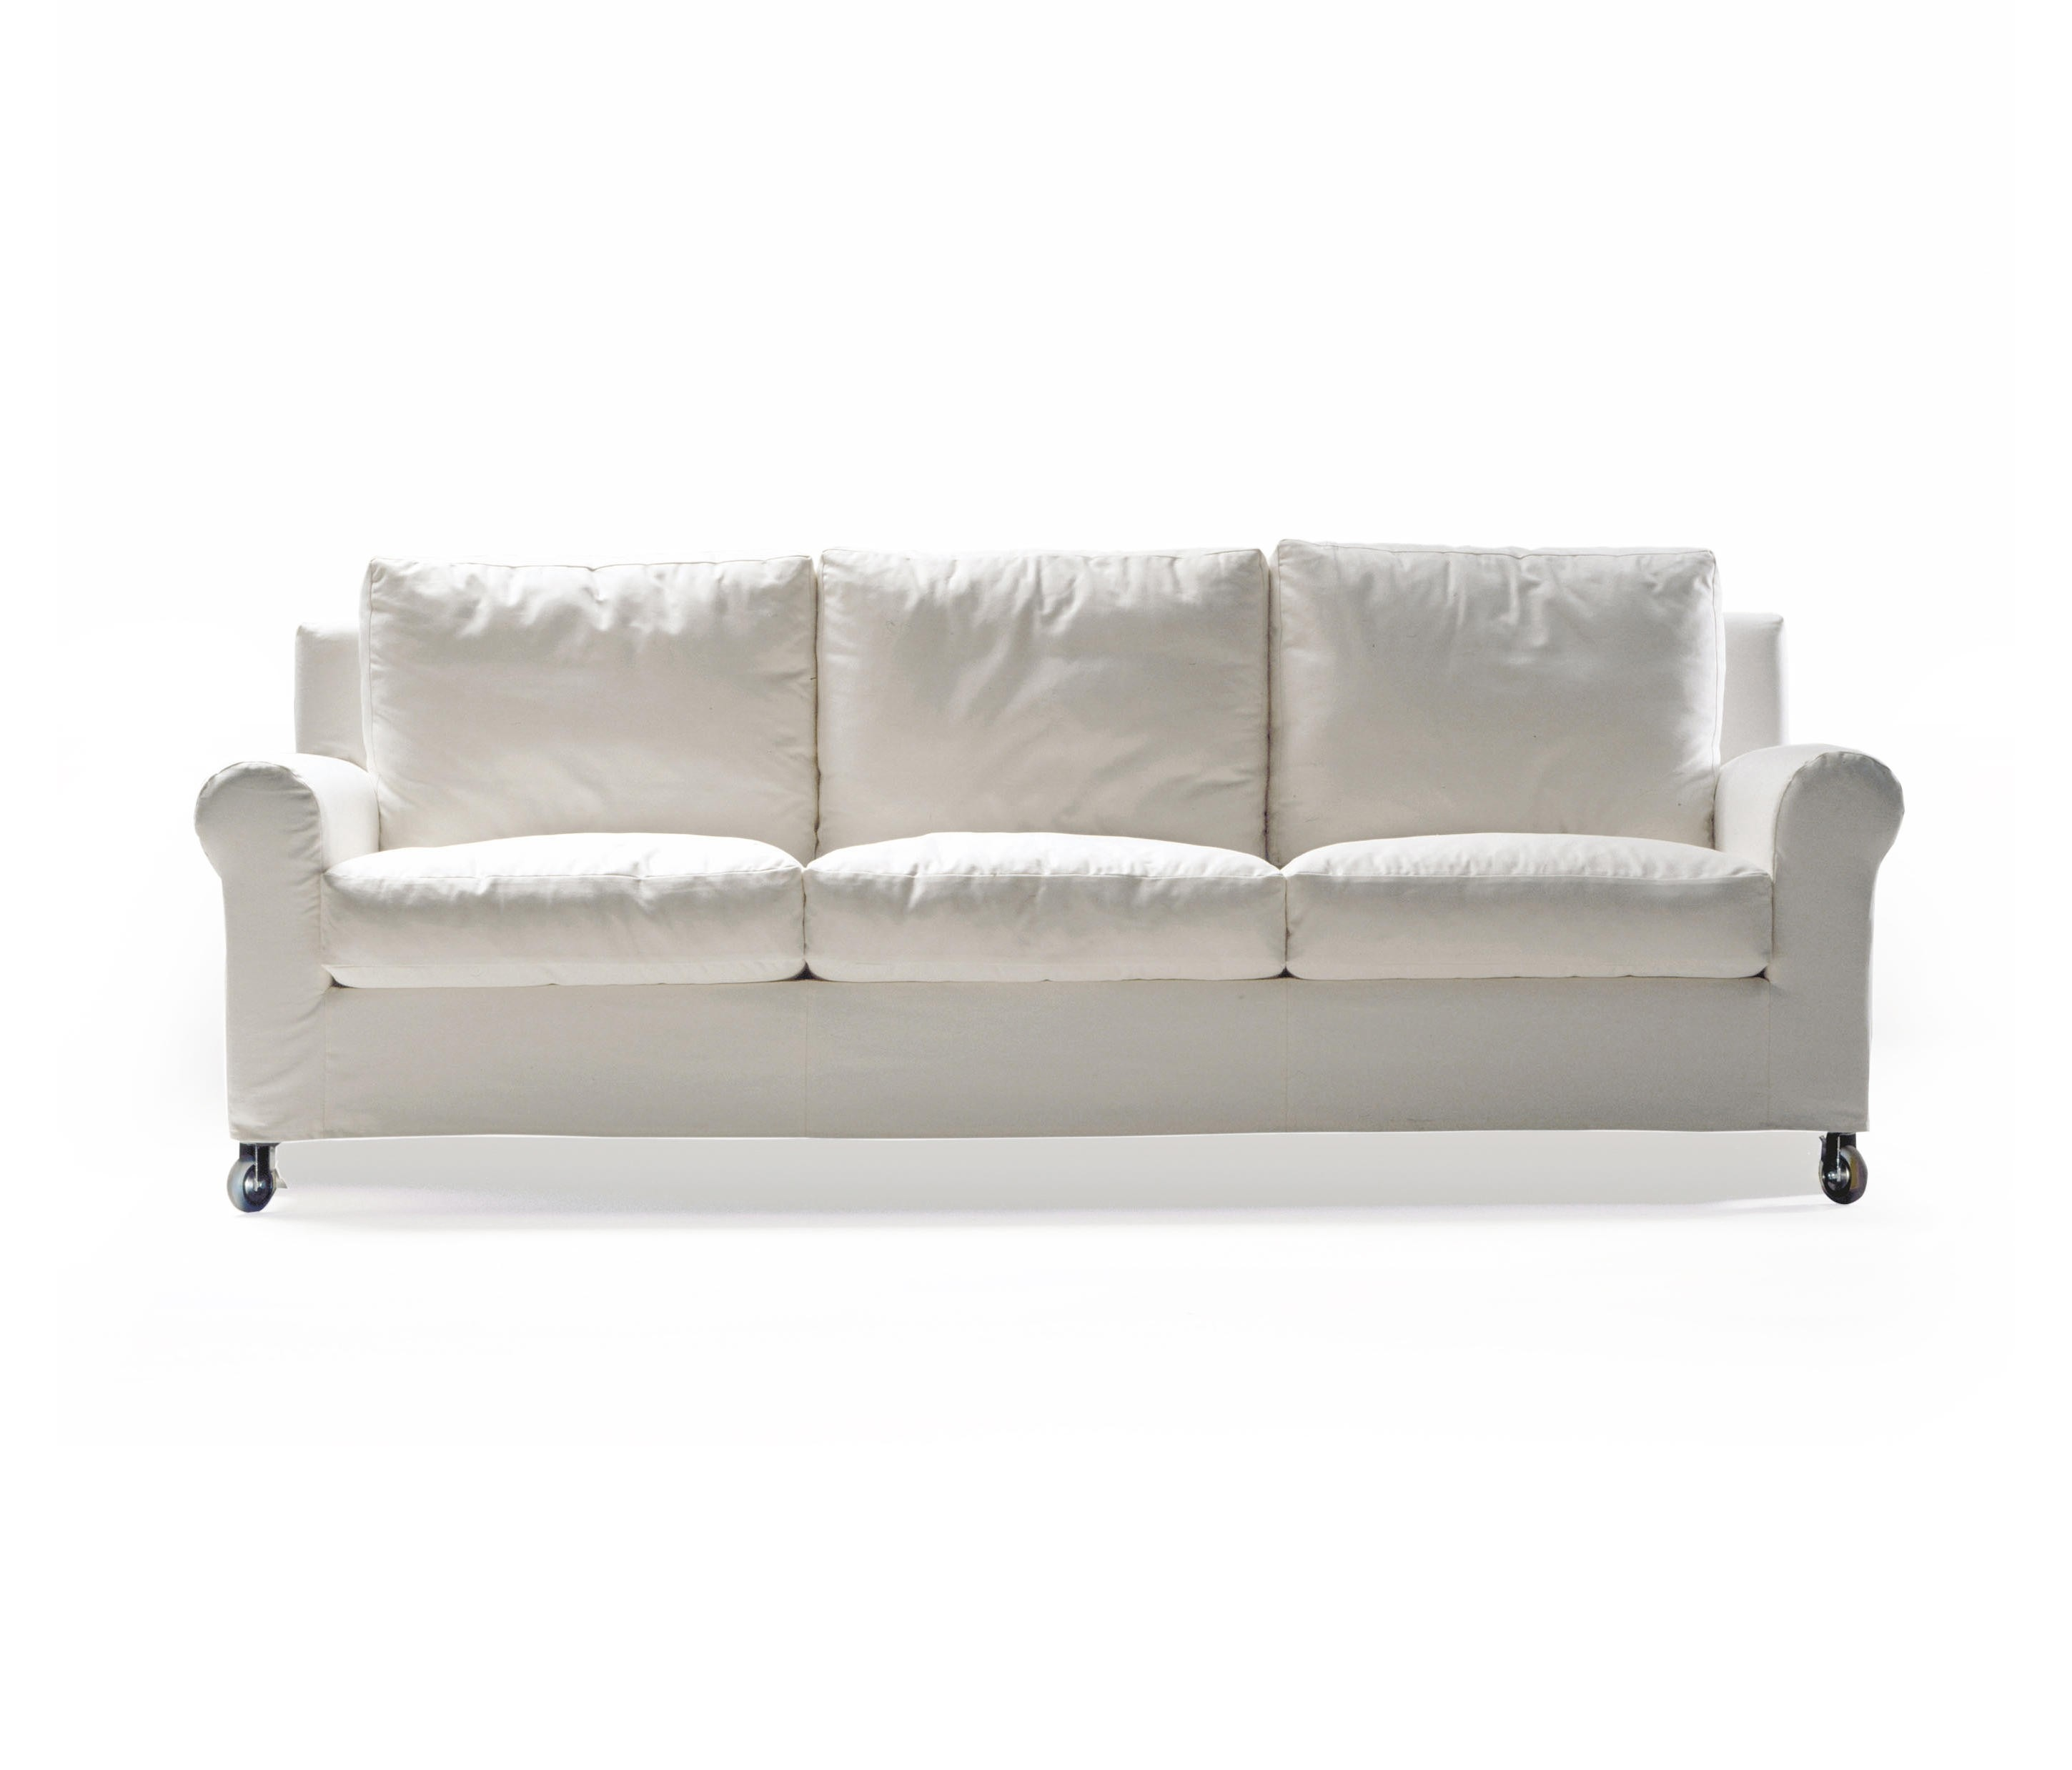 Sofa Helpdesk Flexform Nonnamaria Sofa Deplain